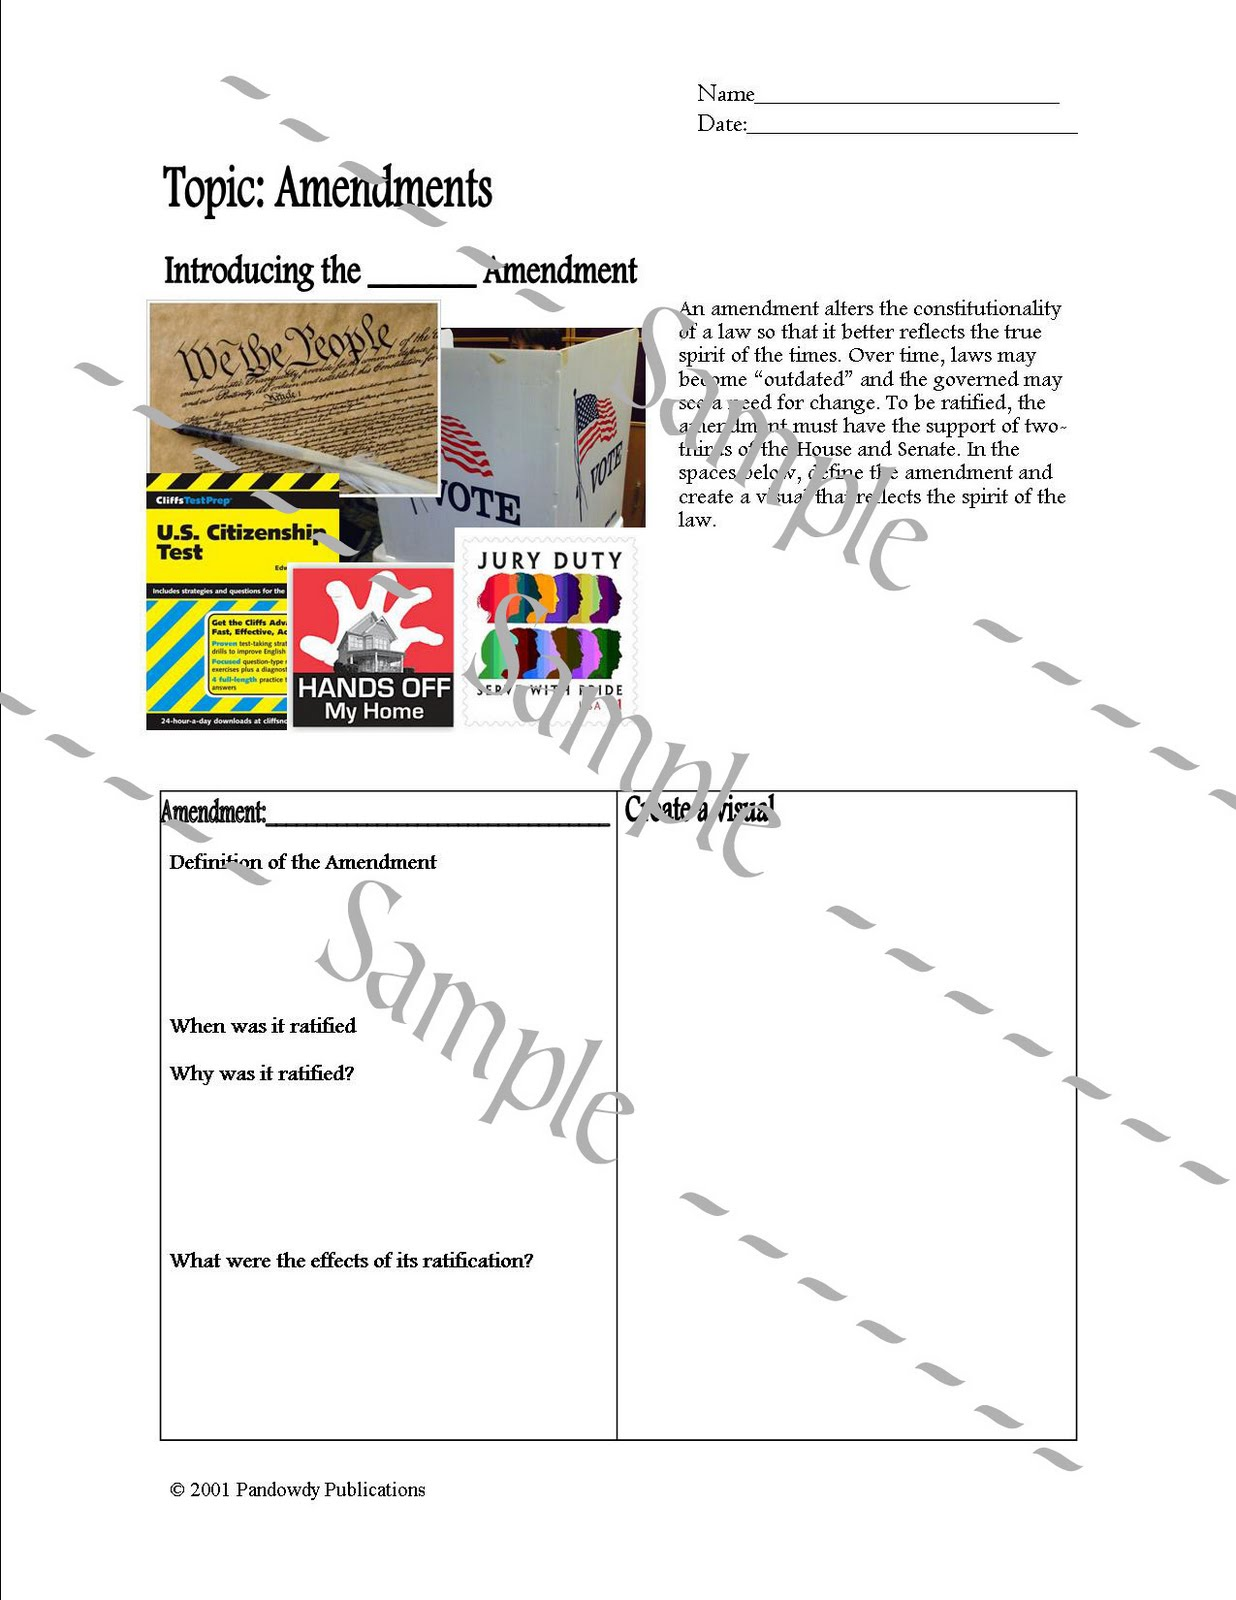 Pandowdy Publications Amendments Worksheet